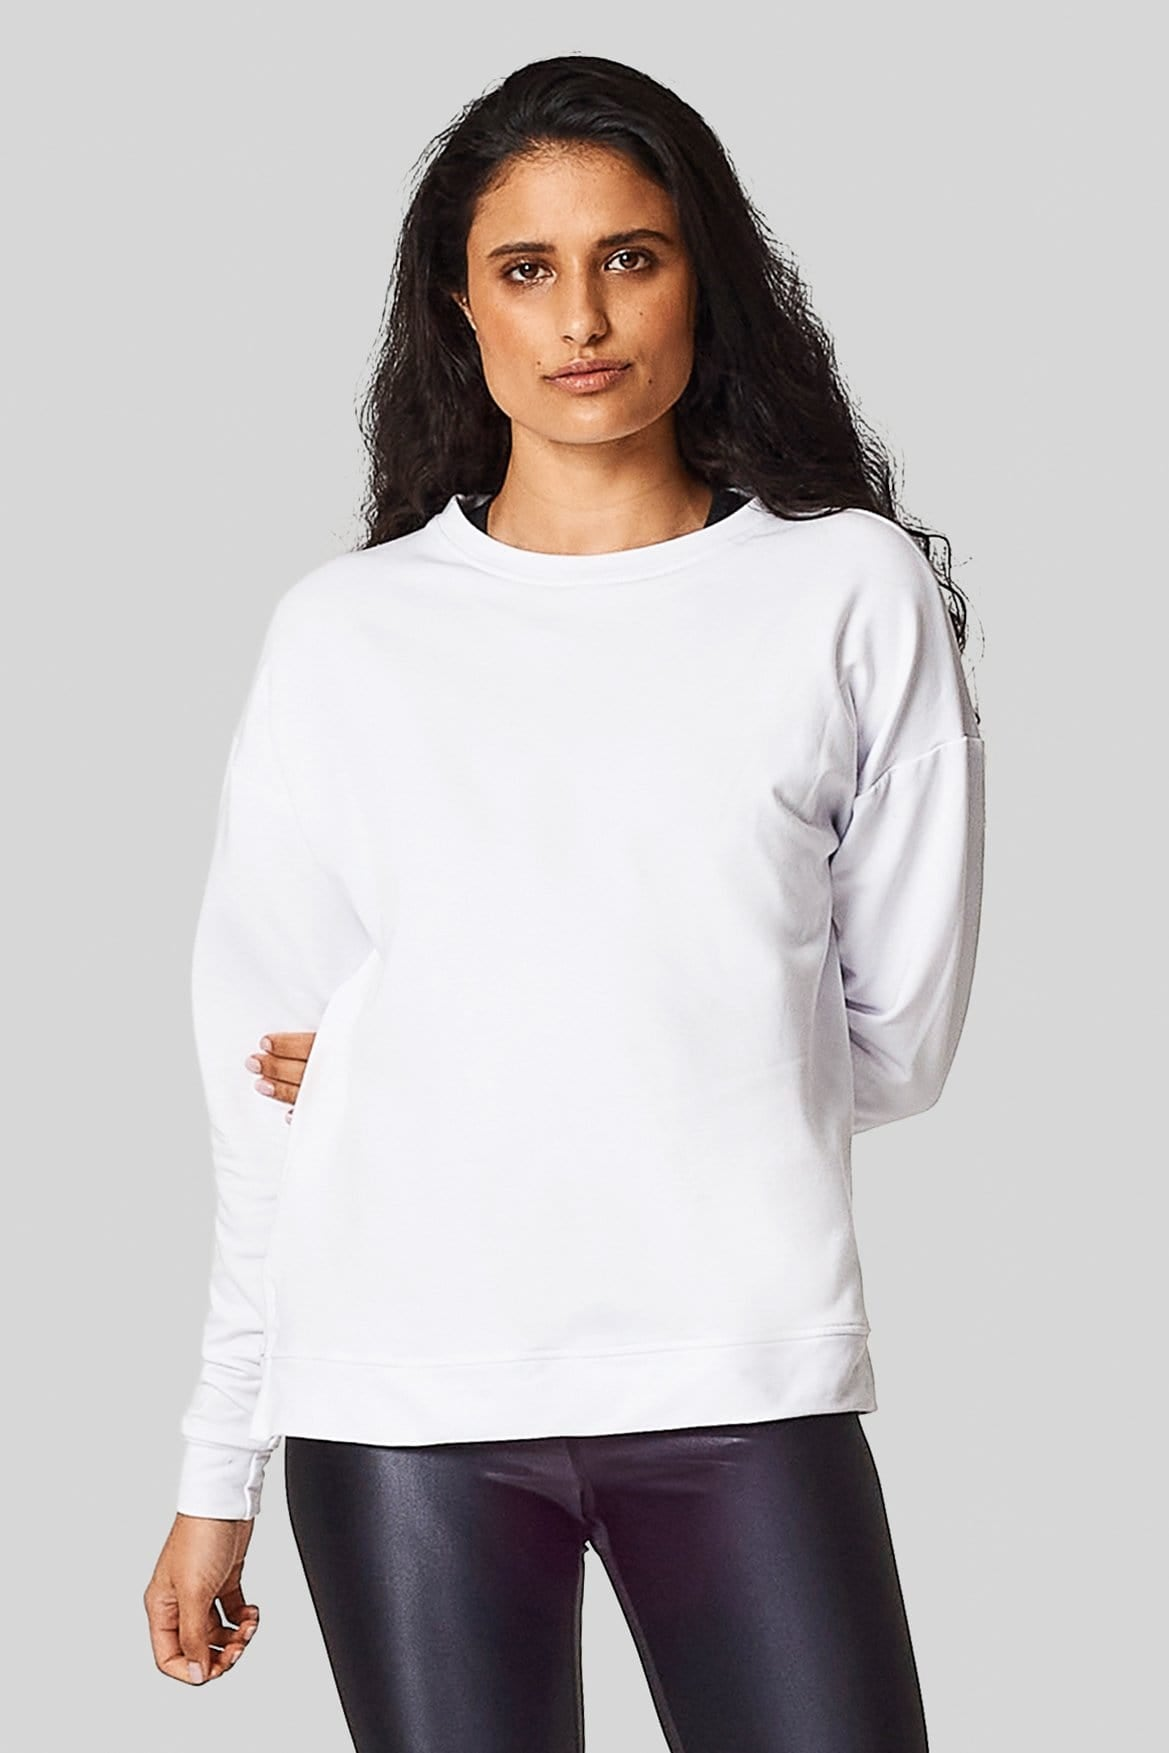 A woman wears a white crewneck sweatshirt made of bamboo fleece with black liquid leggings.